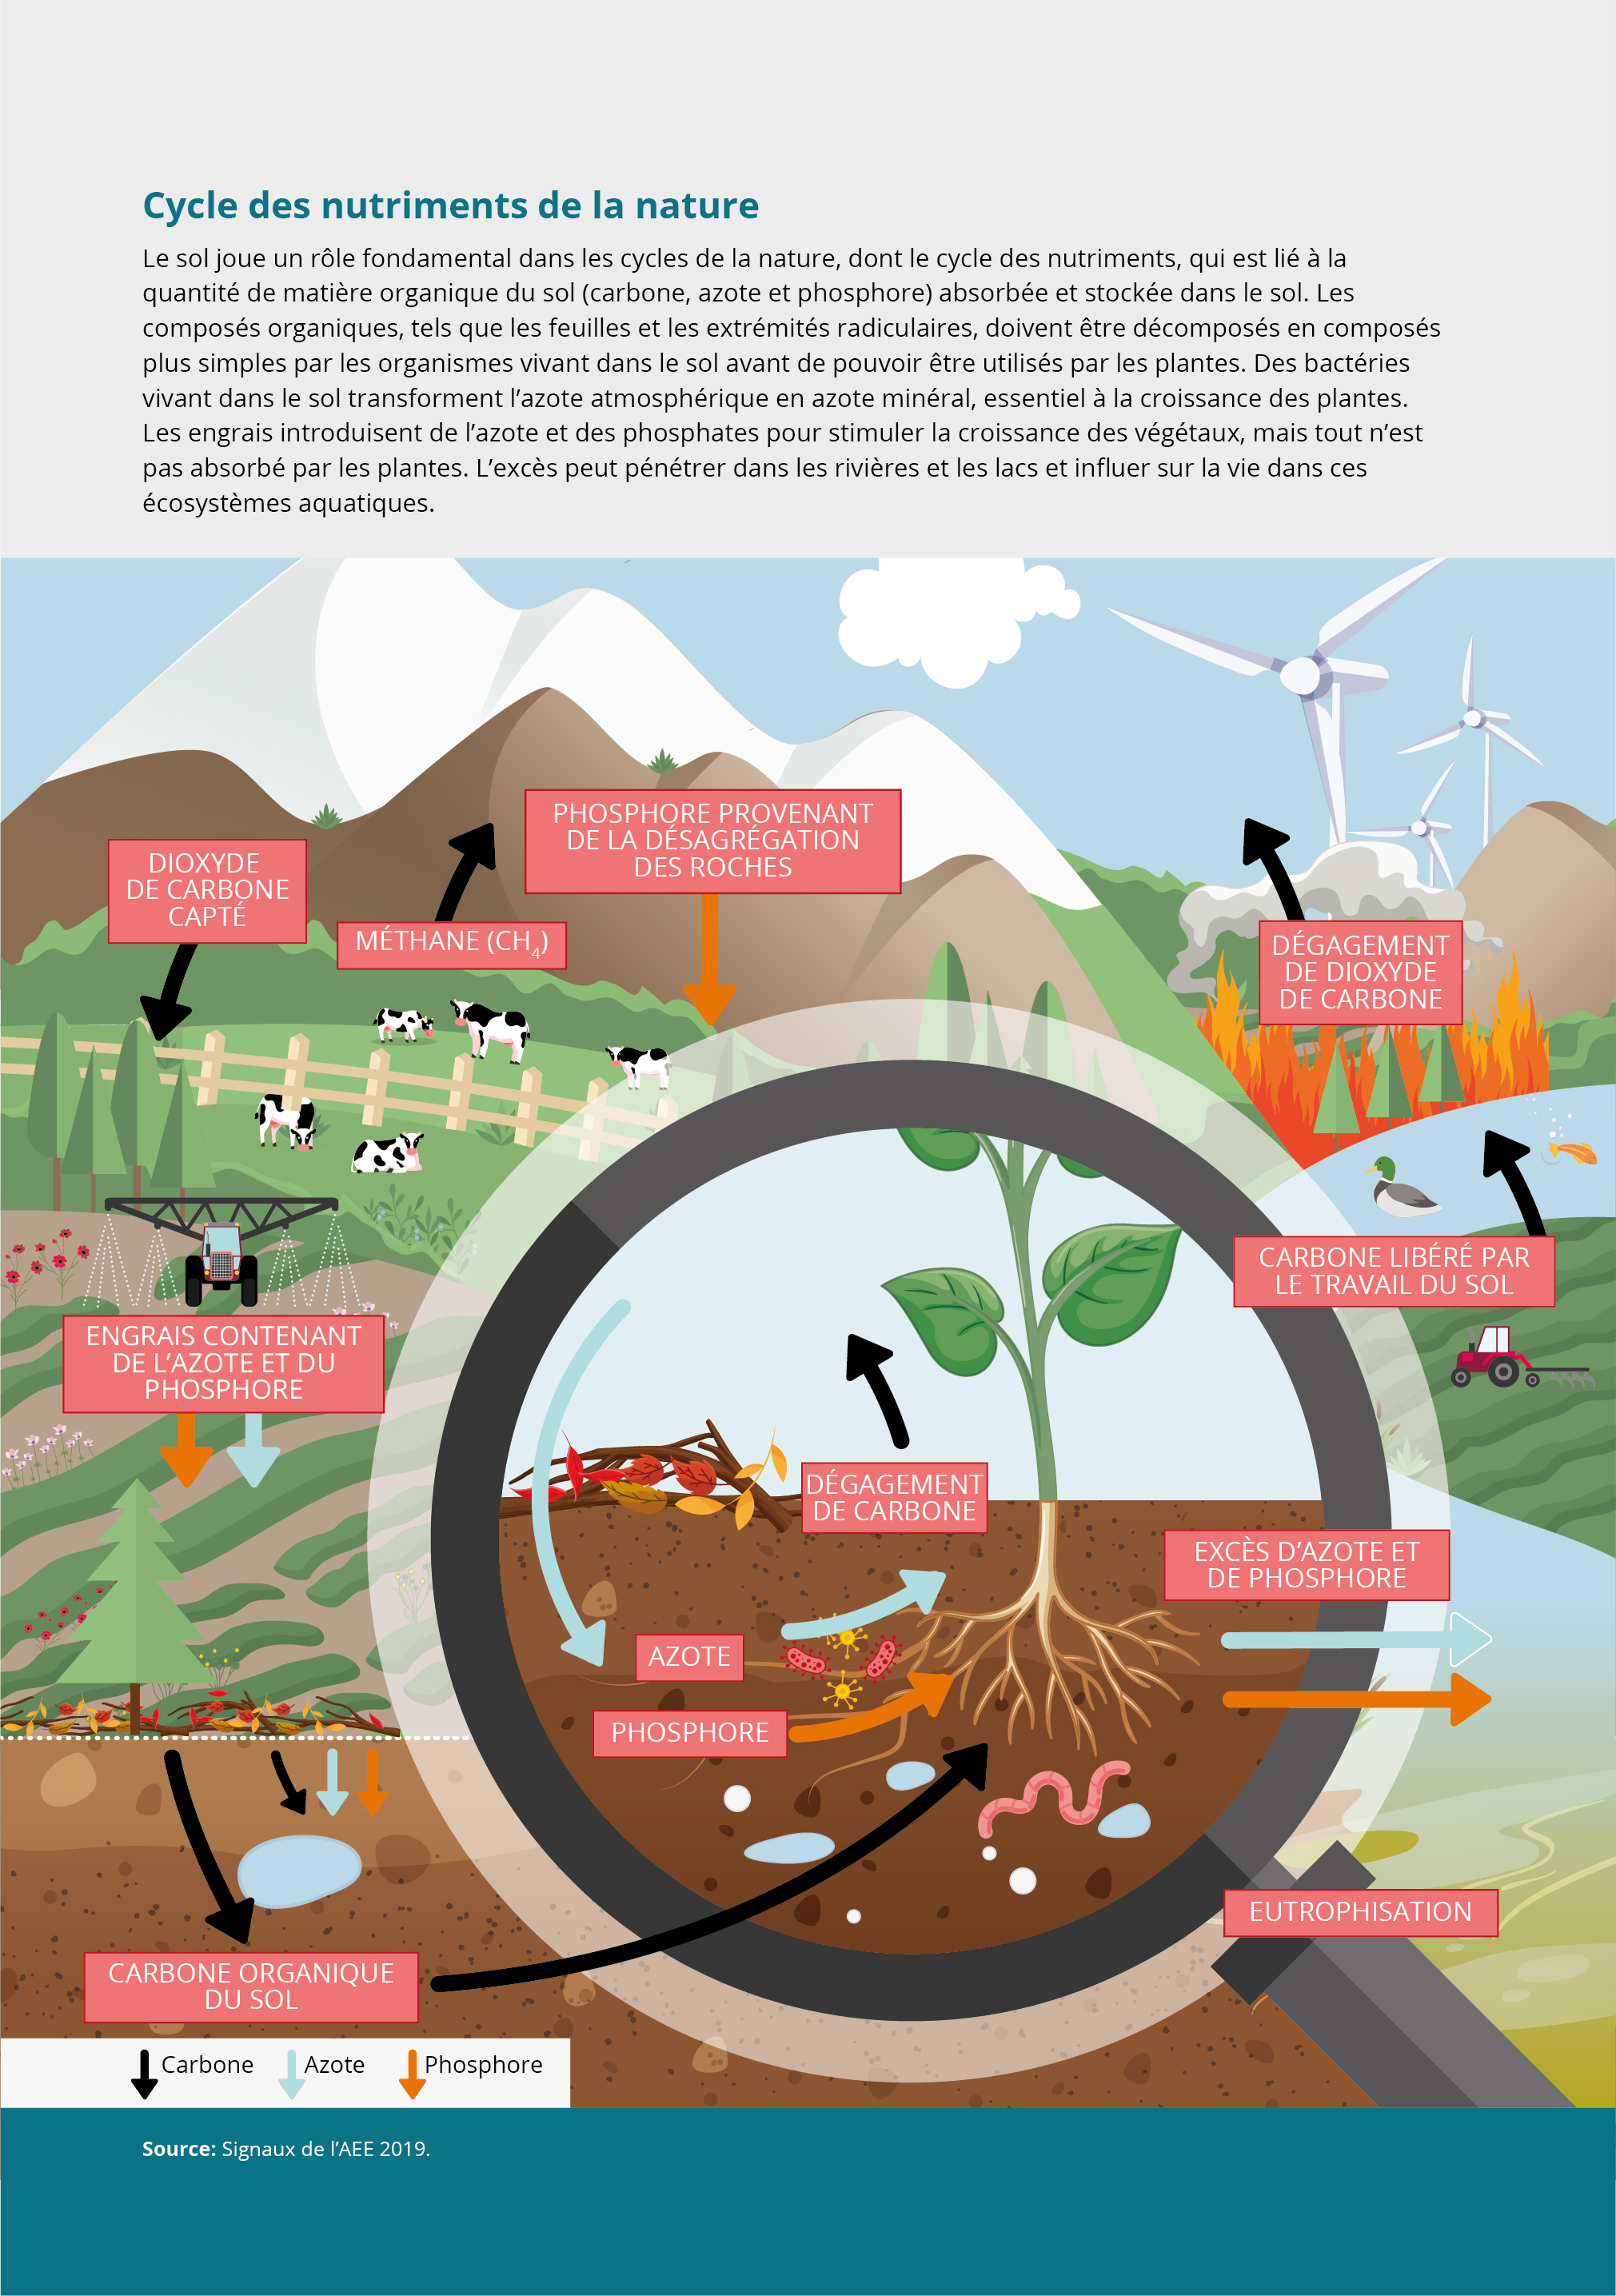 Cycle des nutriments de la nature